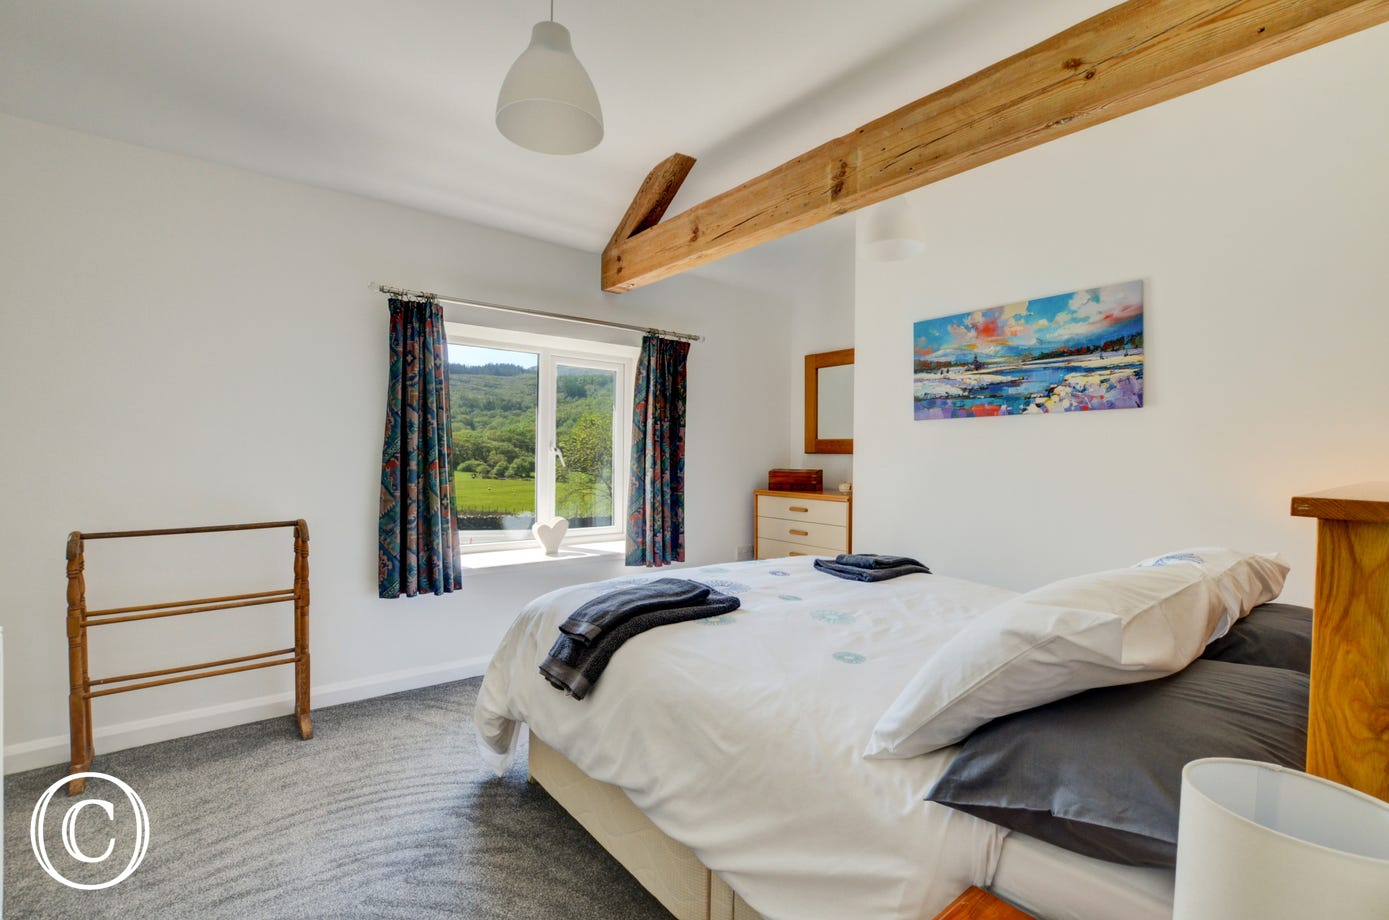 Sit up in the king size bed and take in the glorious views of the Welsh countryside